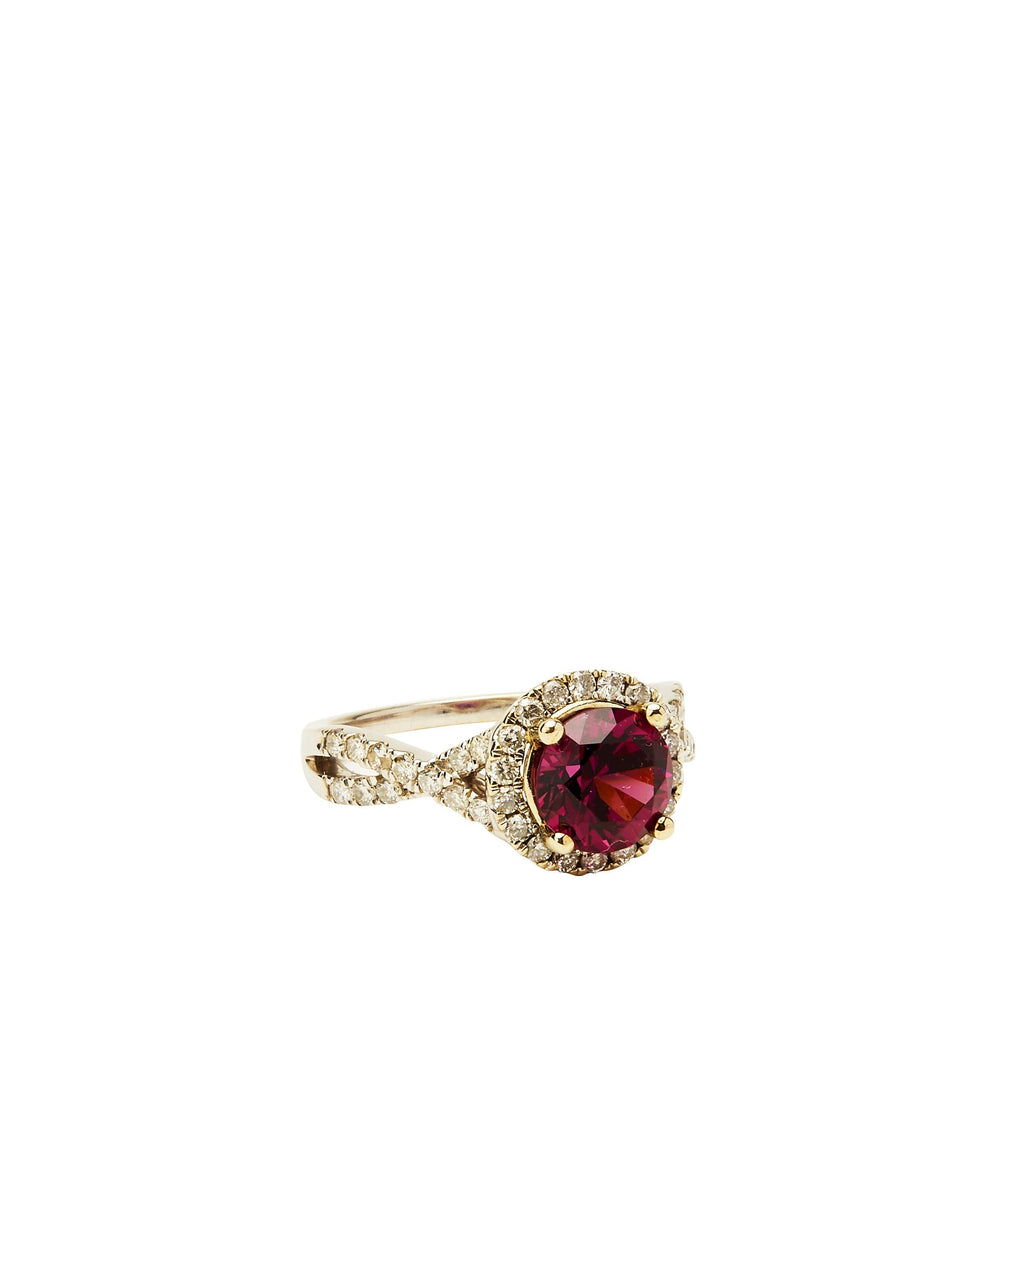 Garnet and Diamond on 14k White Gold